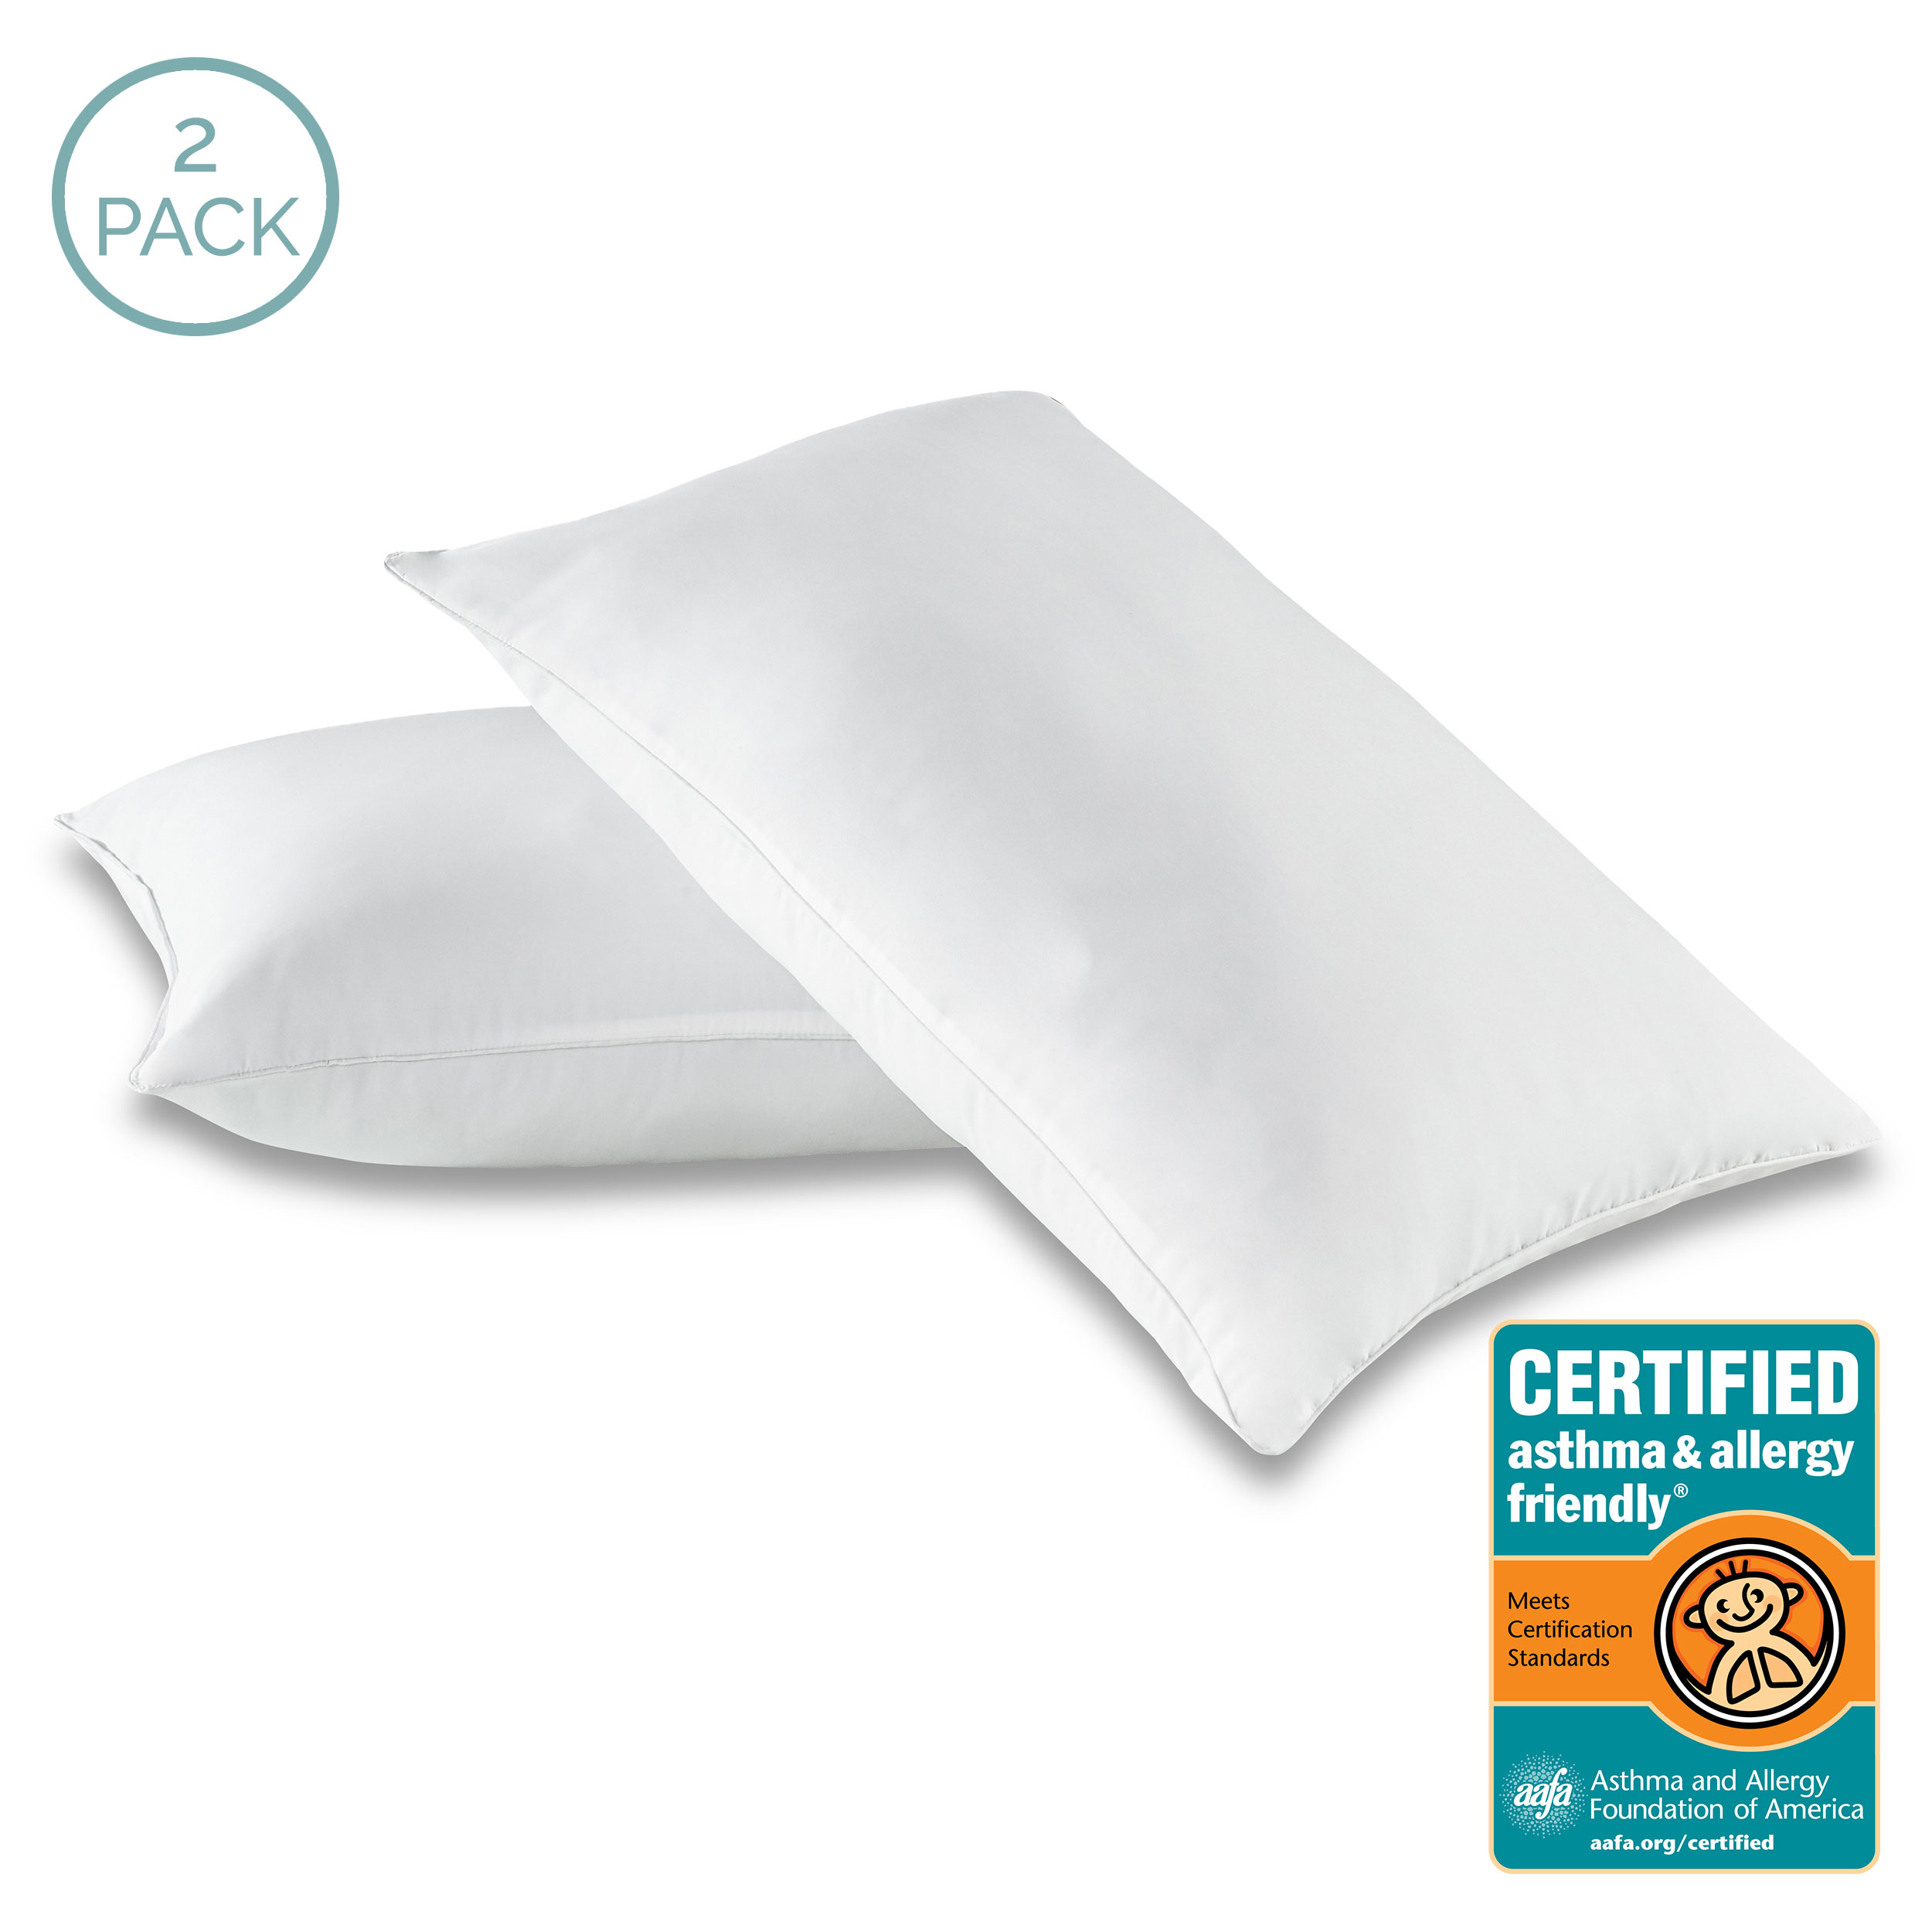 Nautica 174 Certified Asthma Amp Allergy Friendly 174 Pillow 2